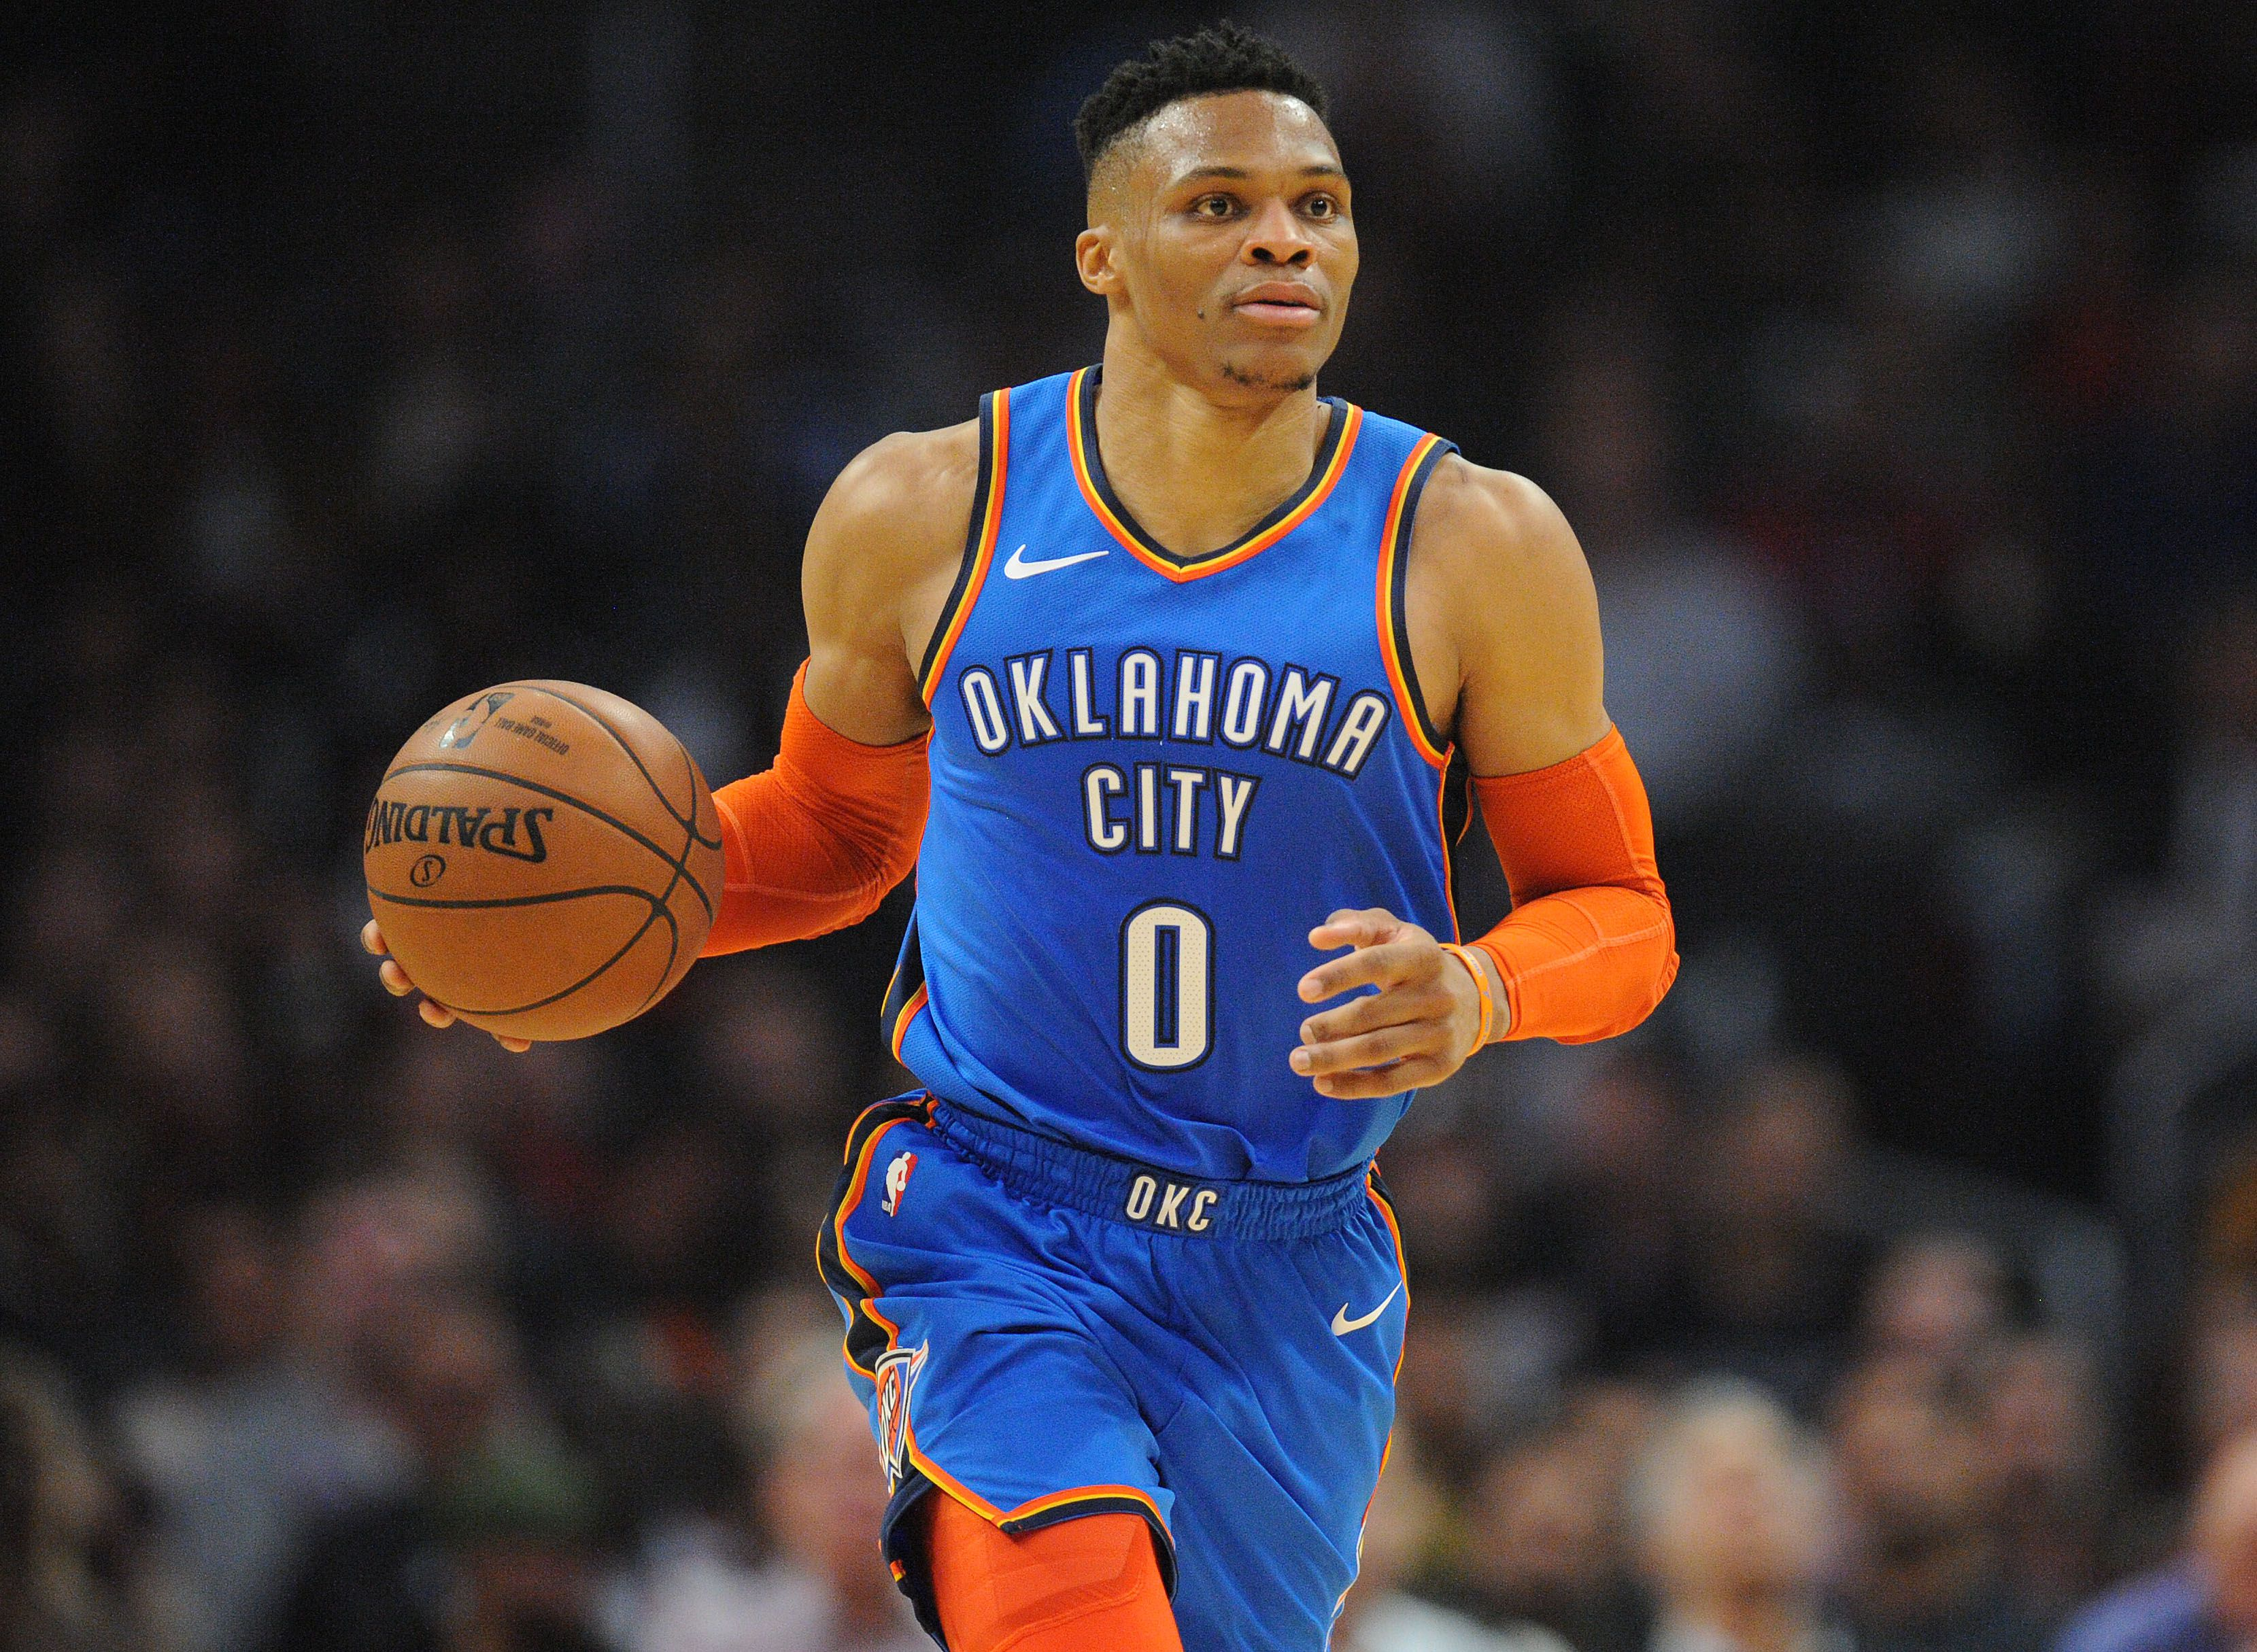 Opinion: No excusing fan behavior that prompted Russell Westbrook tirade